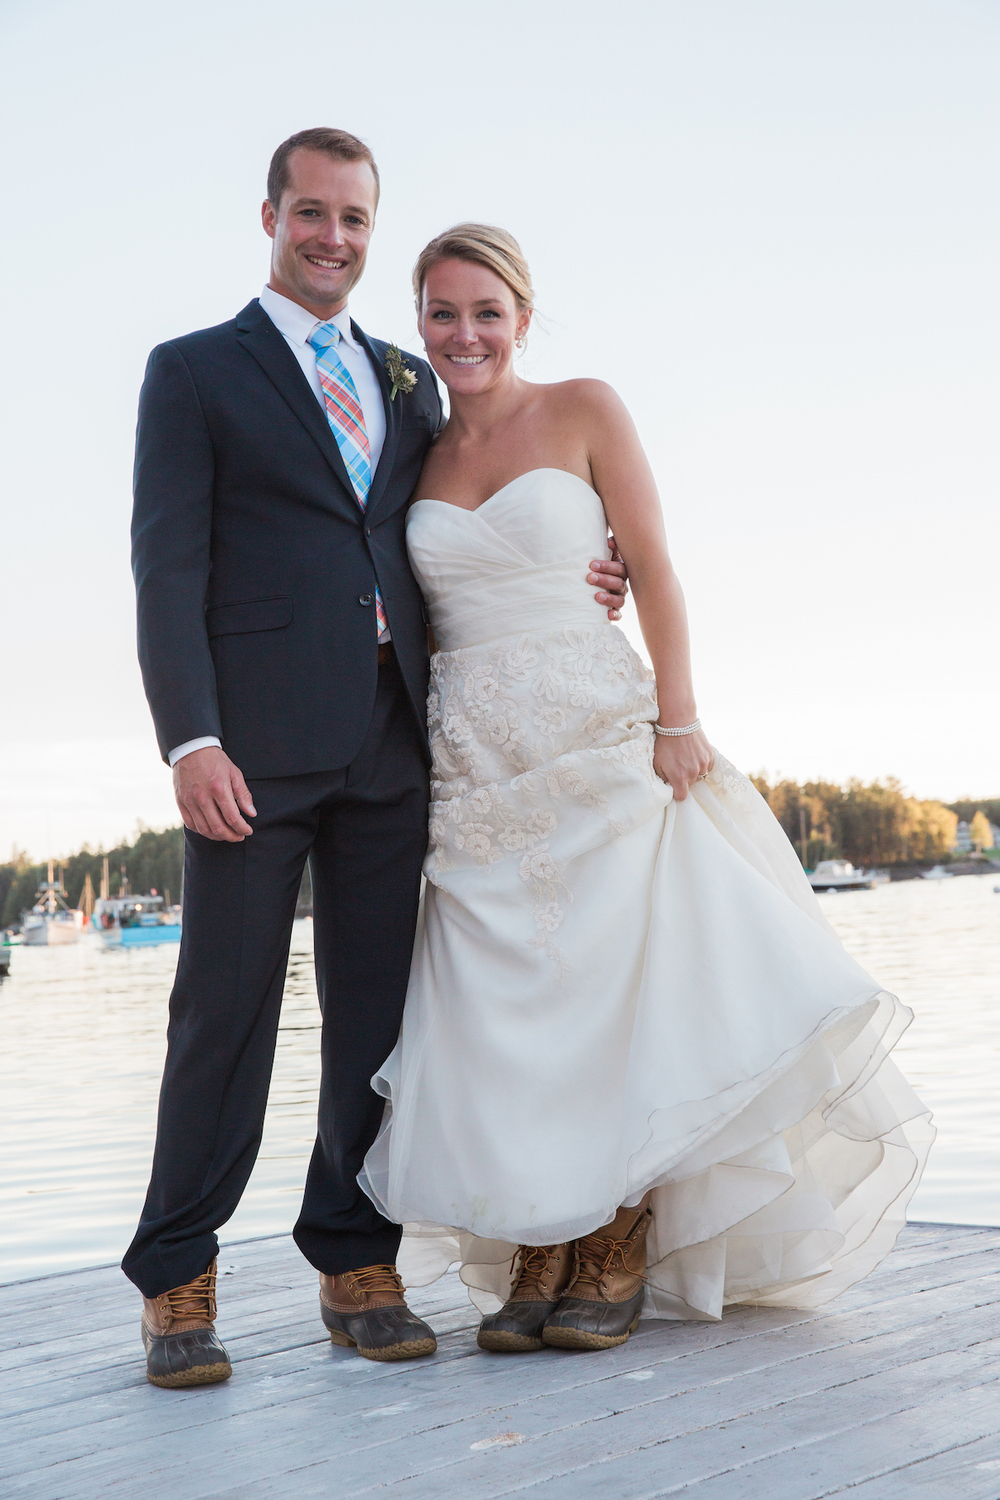 Molly_Justin_Wedding_2015_FullSize-310.jpg